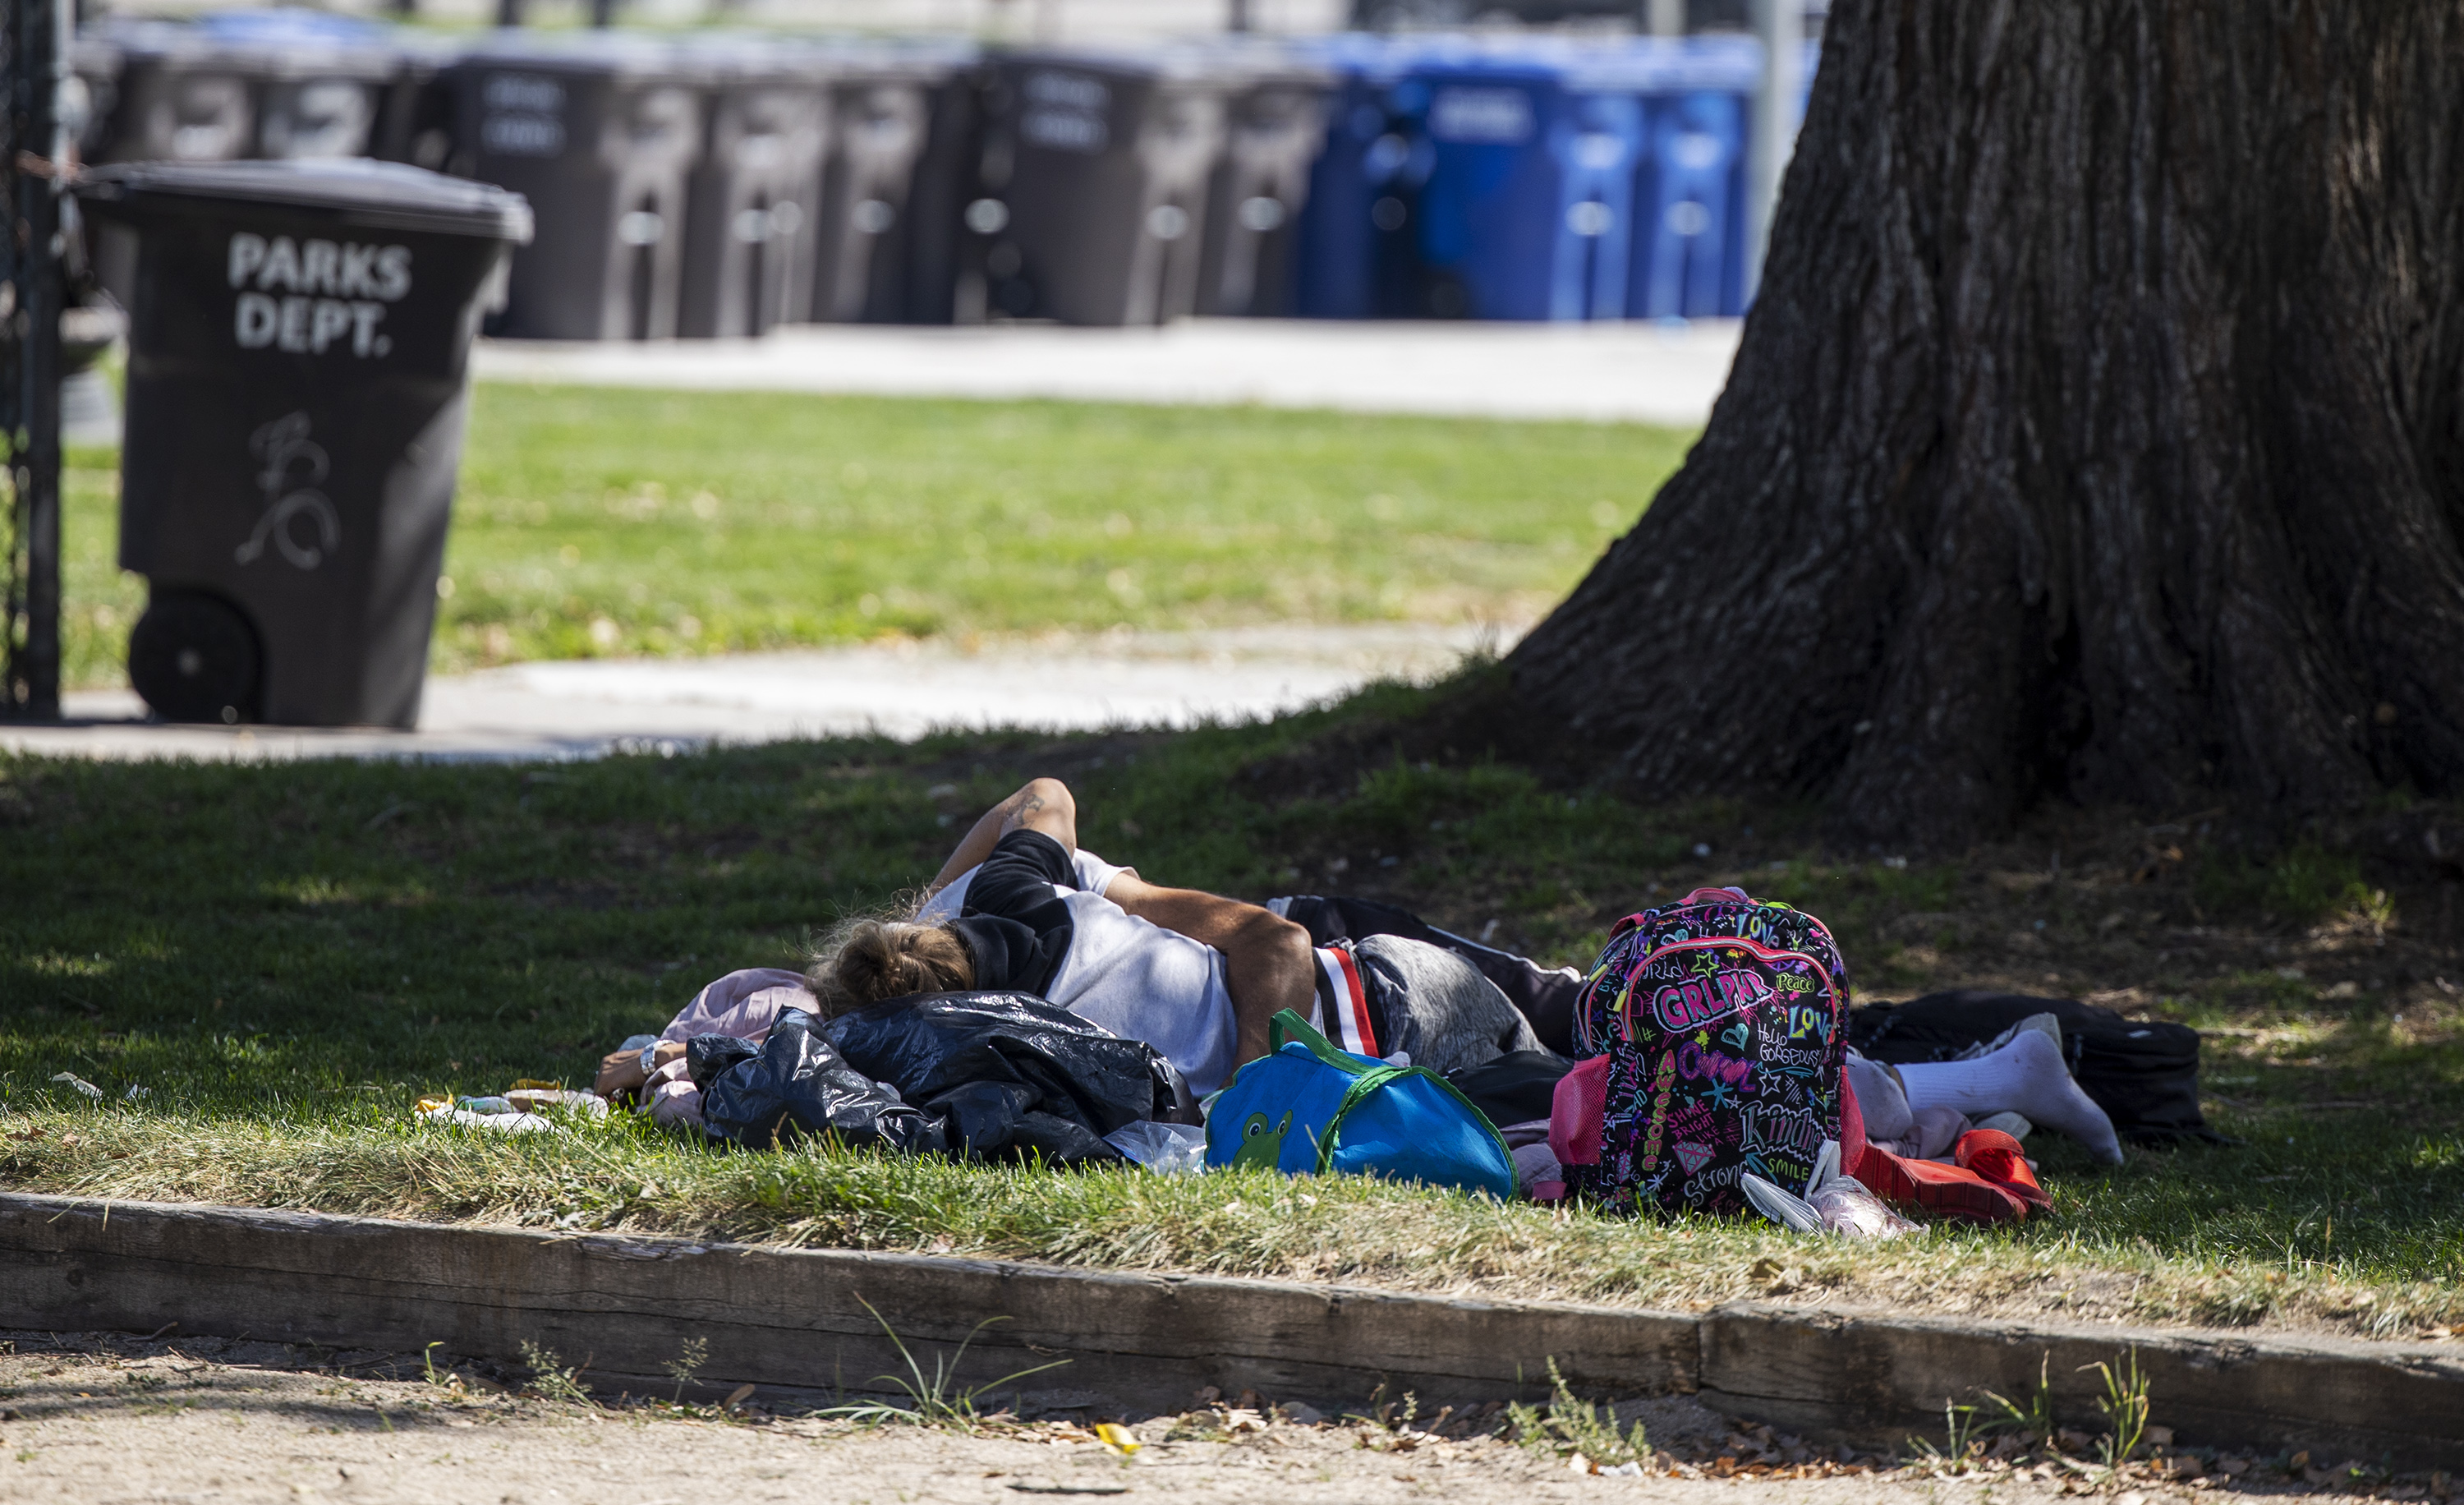 A couple lies on the grass at Pioneer Park in Salt Lake City on Tuesday, Sept. 14, 2021.The Pioneer Park Coalition on Tuesday called for immediate action to address the rise in crime and other illegal activities that go on in and around the park.